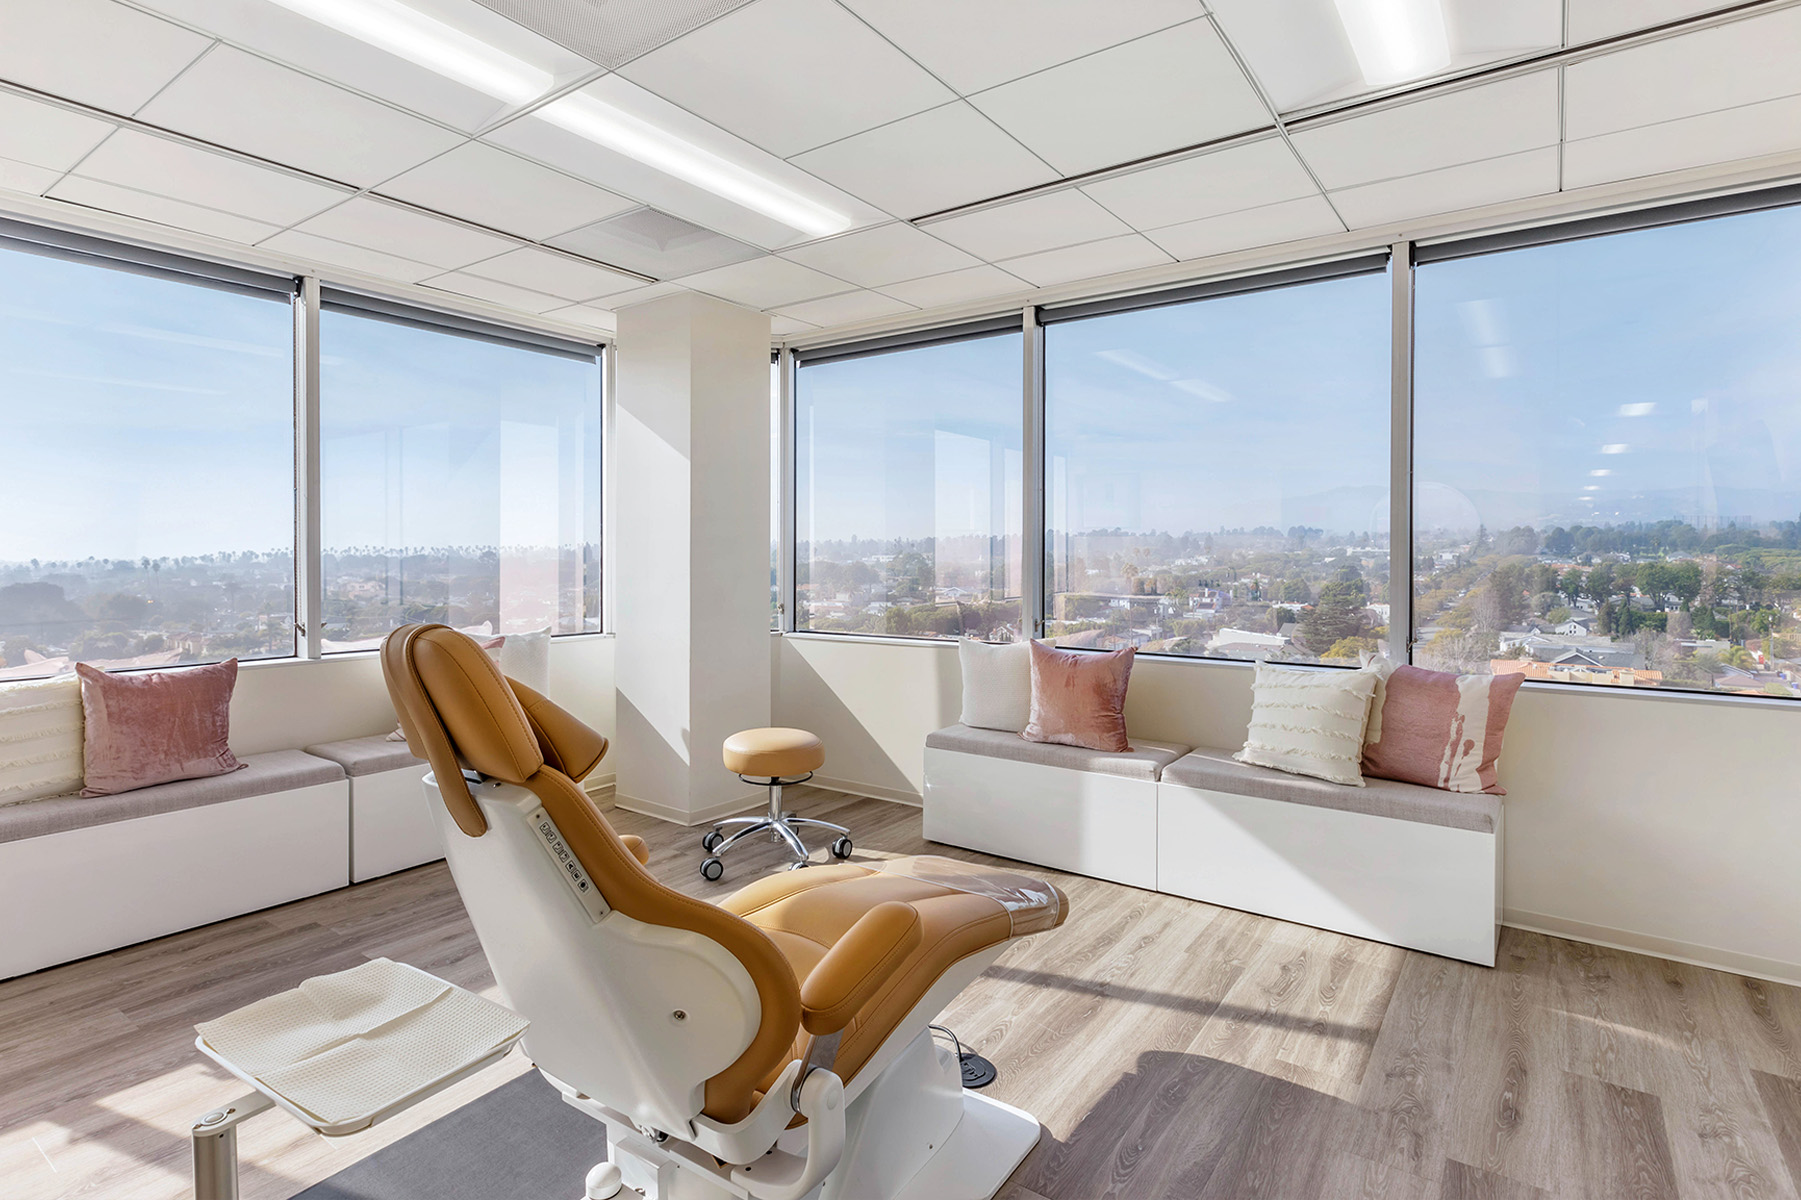 Upscale Dental Office with City Views